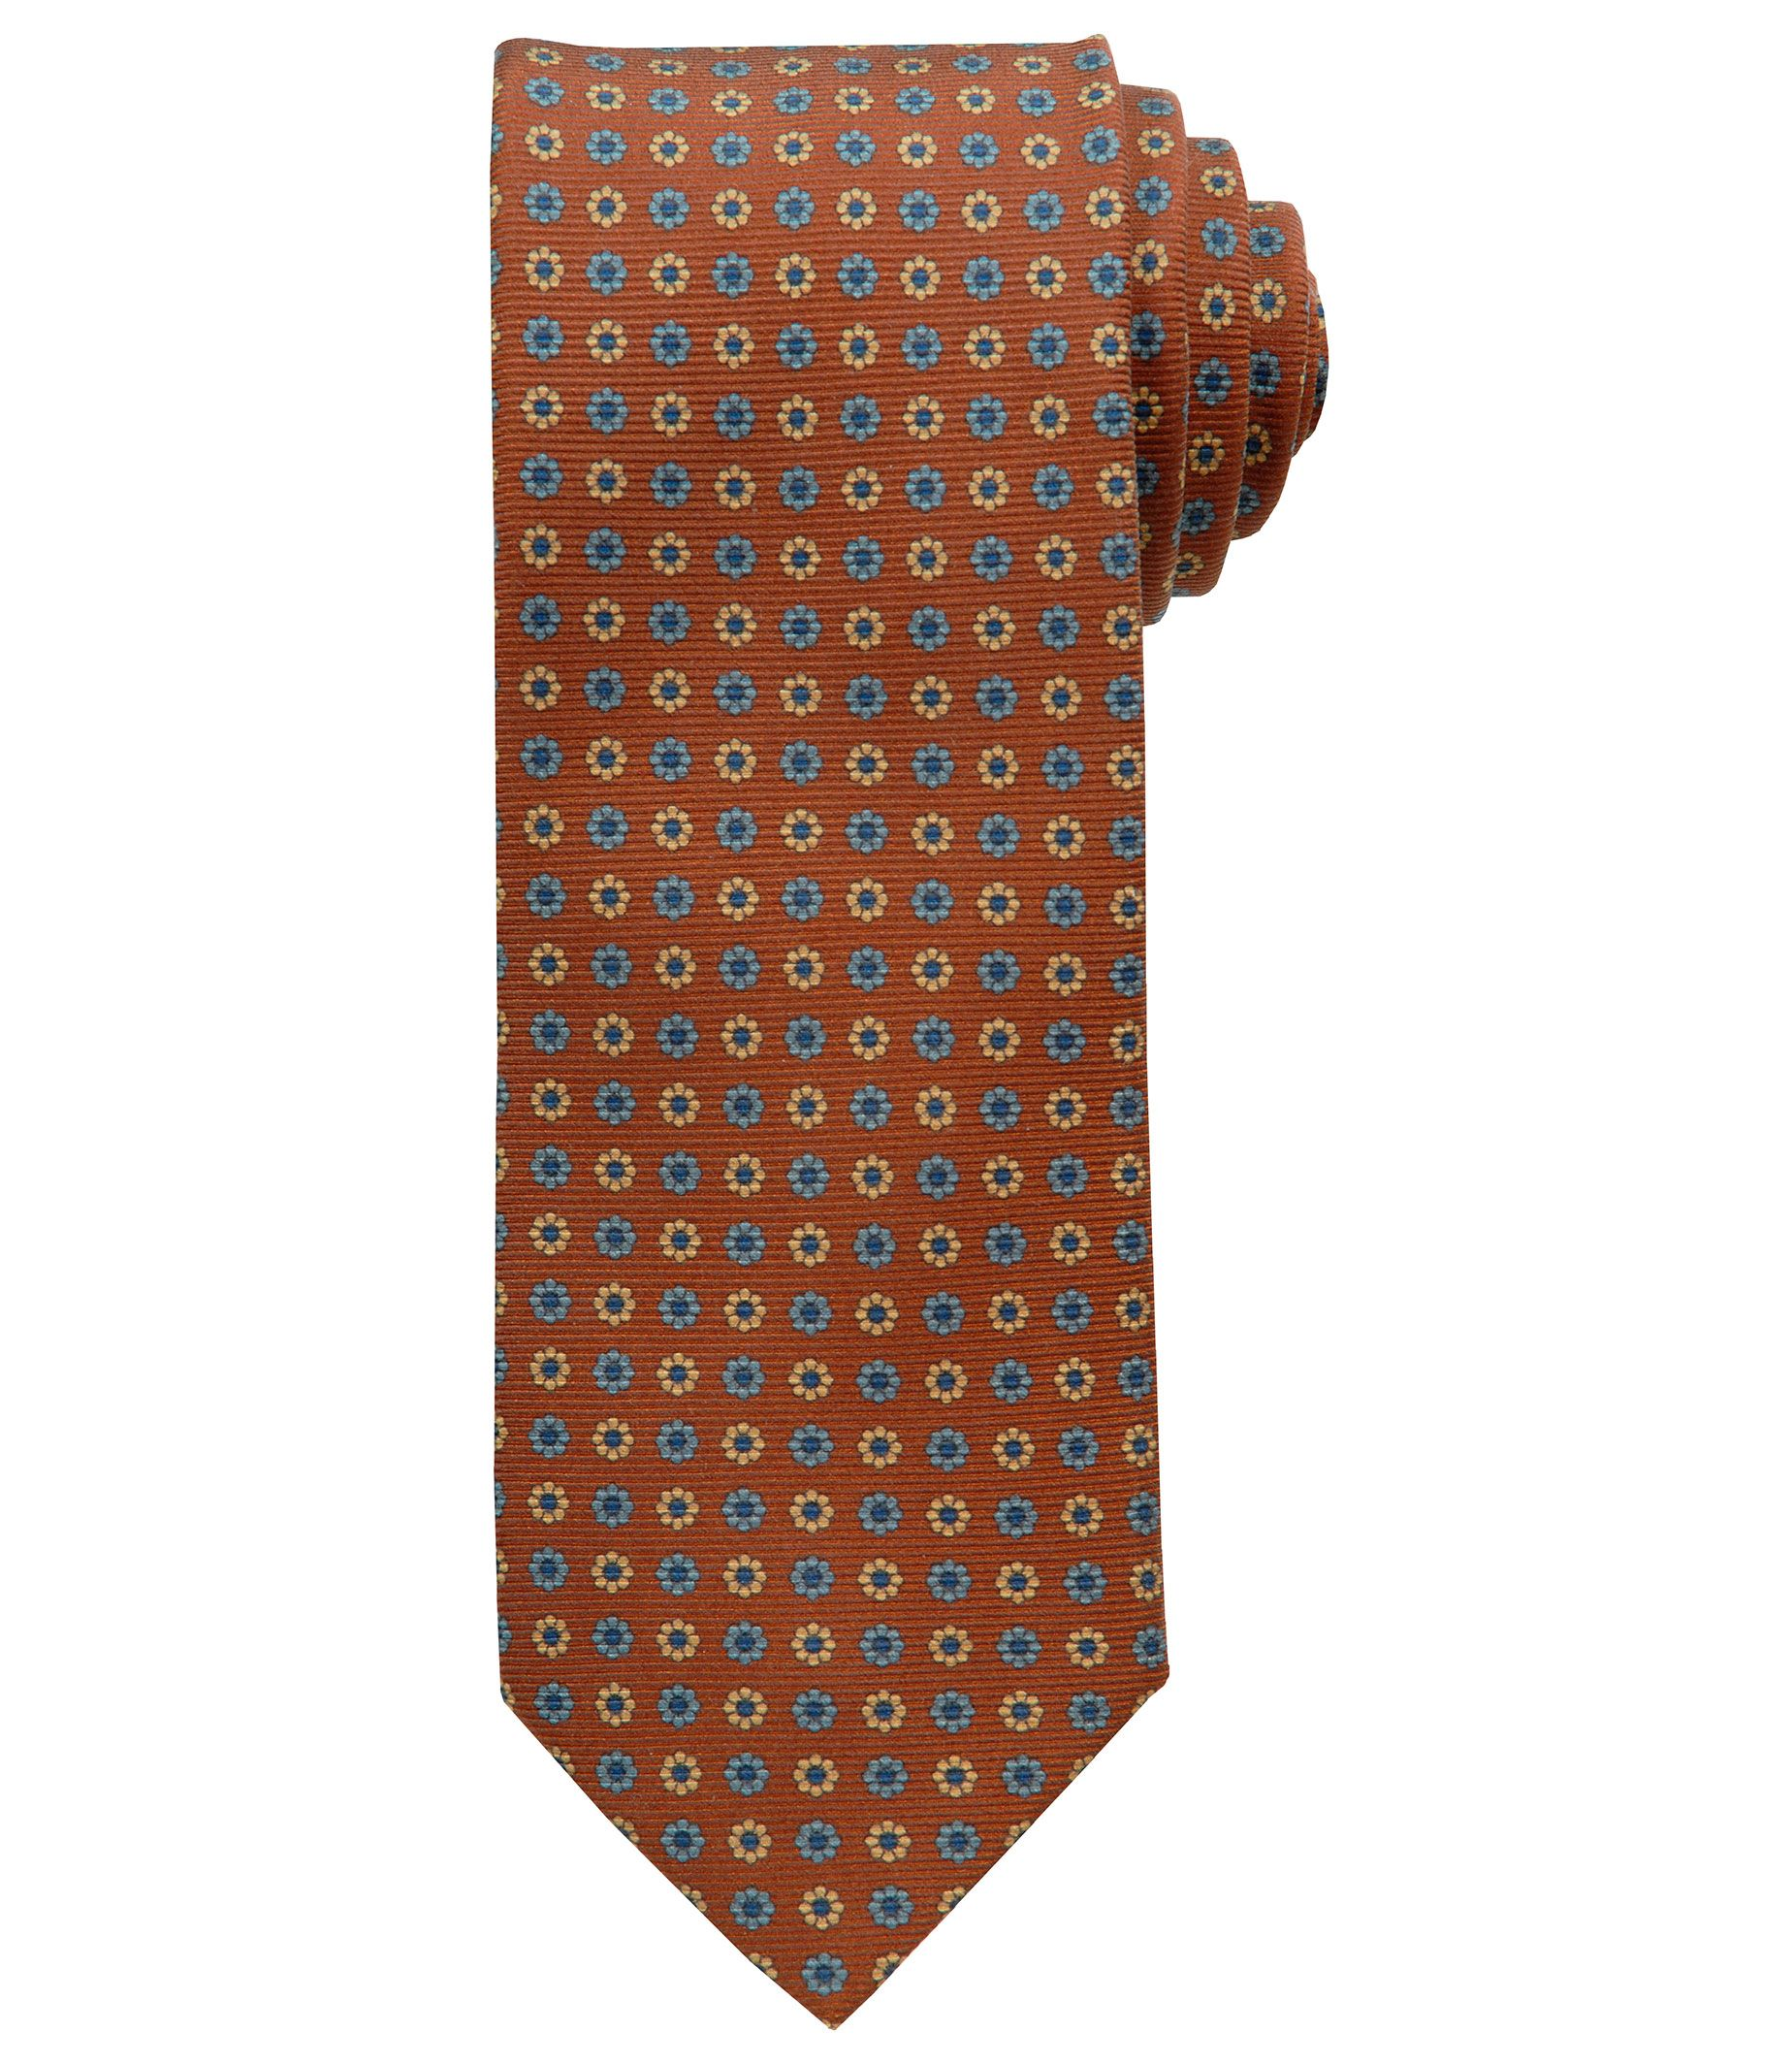 Heritage Collection Neat Floral Tie